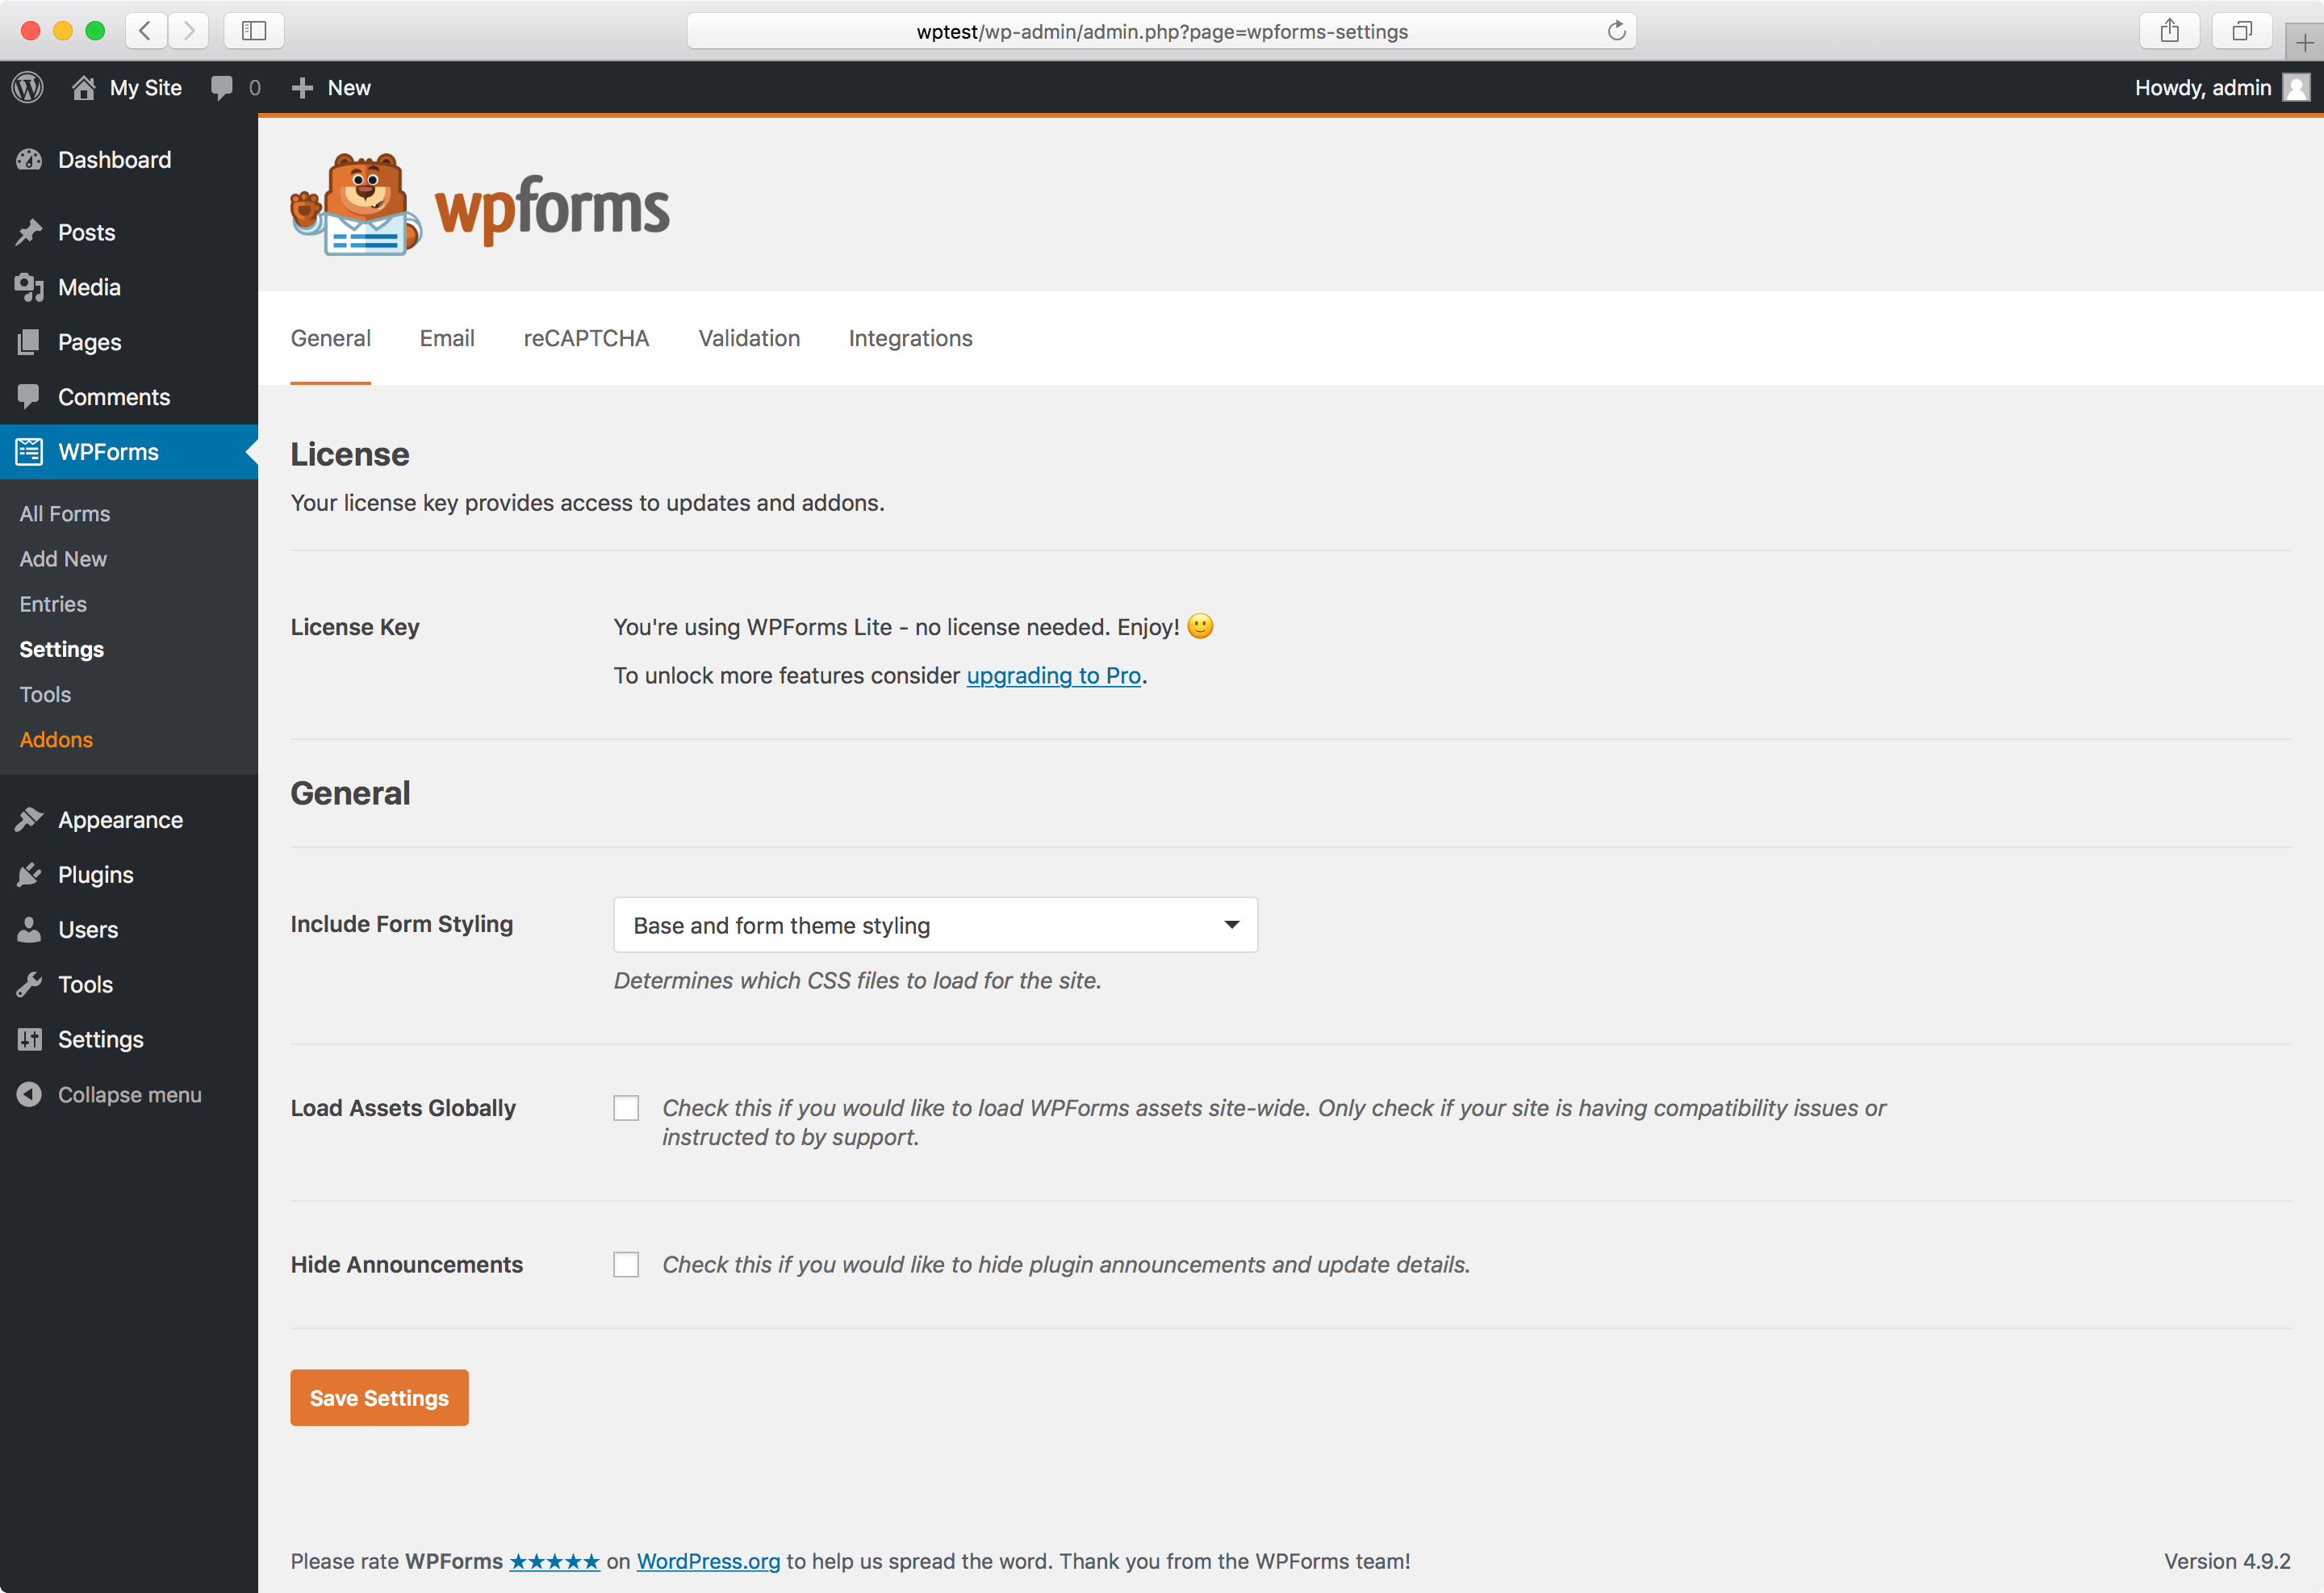 WPForms settings